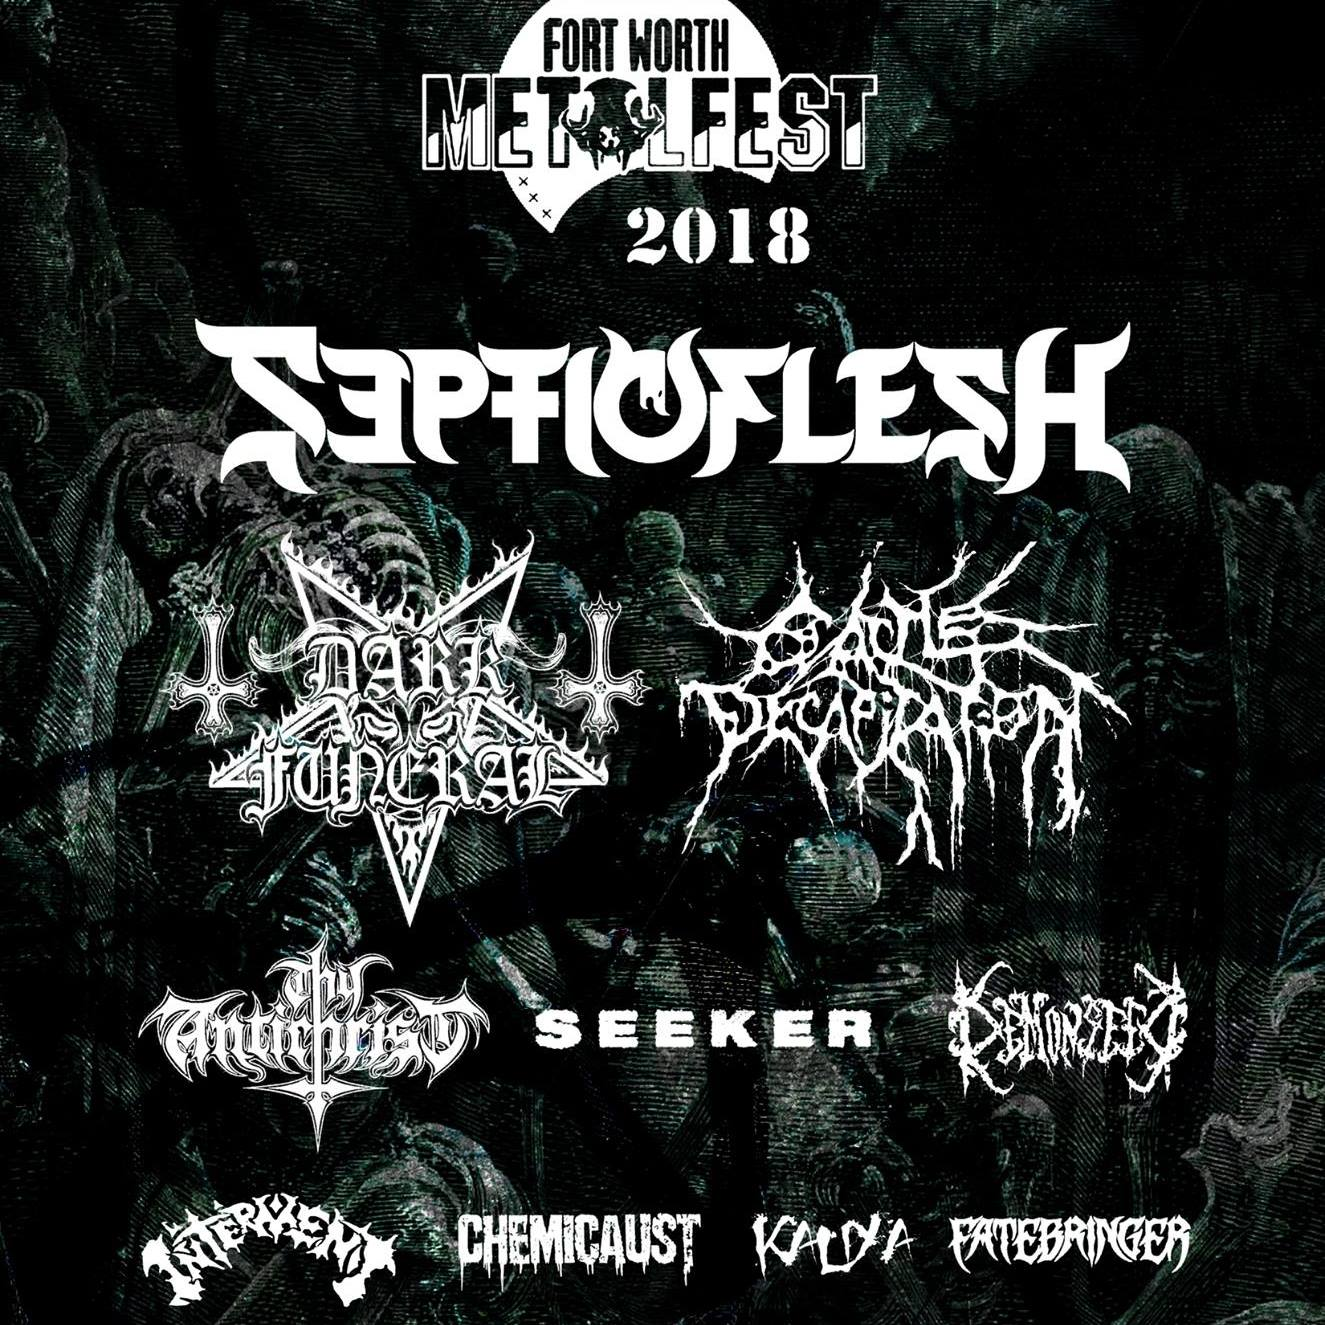 Fort Worth Metal Fest 2018